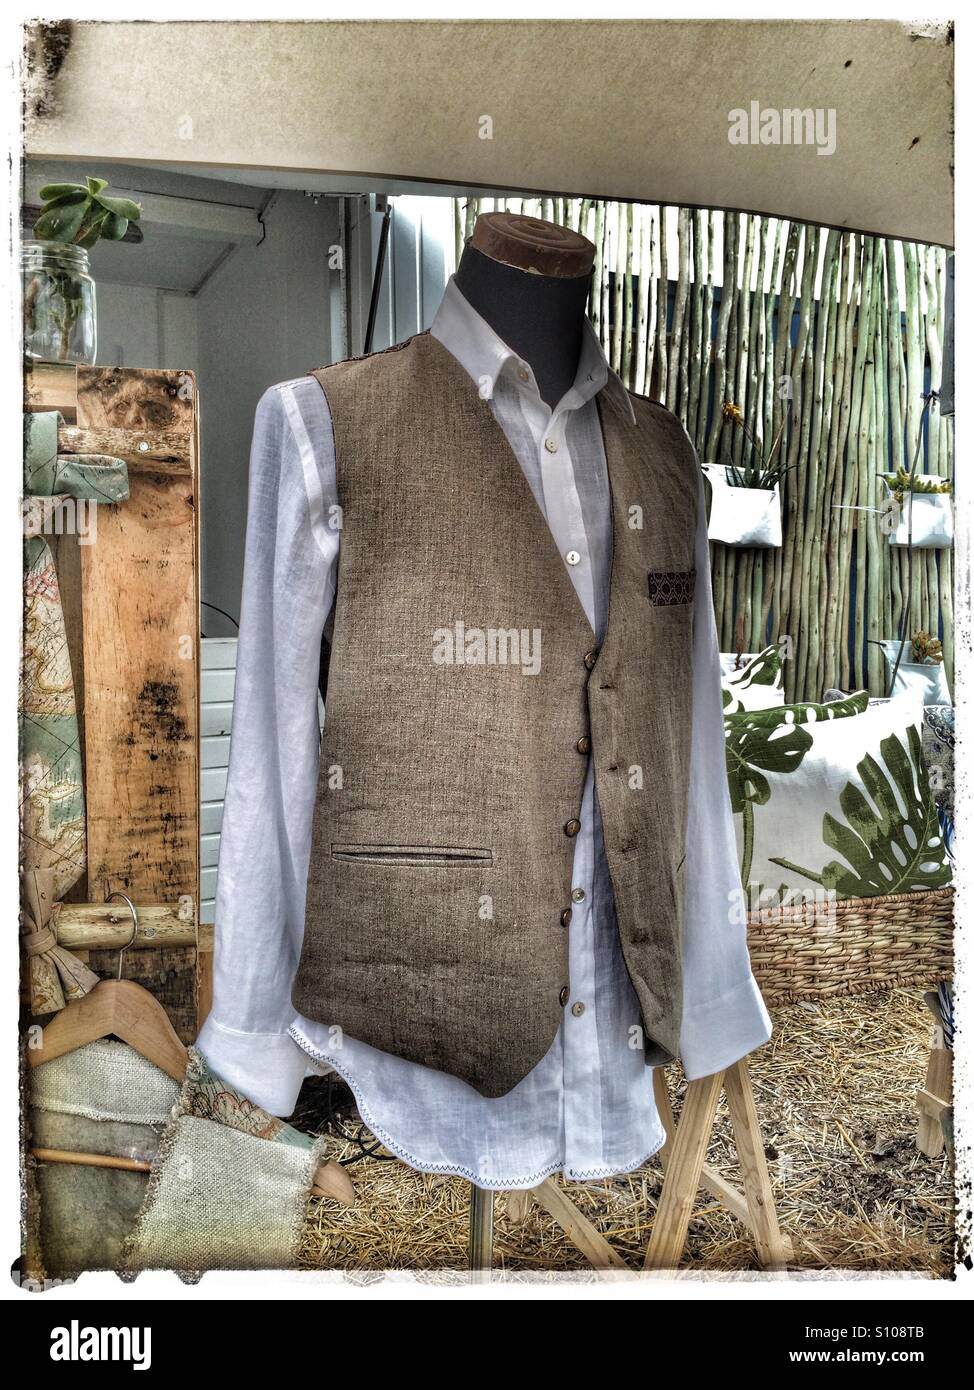 Waistcoat on mannequin at OXCF market in Cape Town. - Stock Image